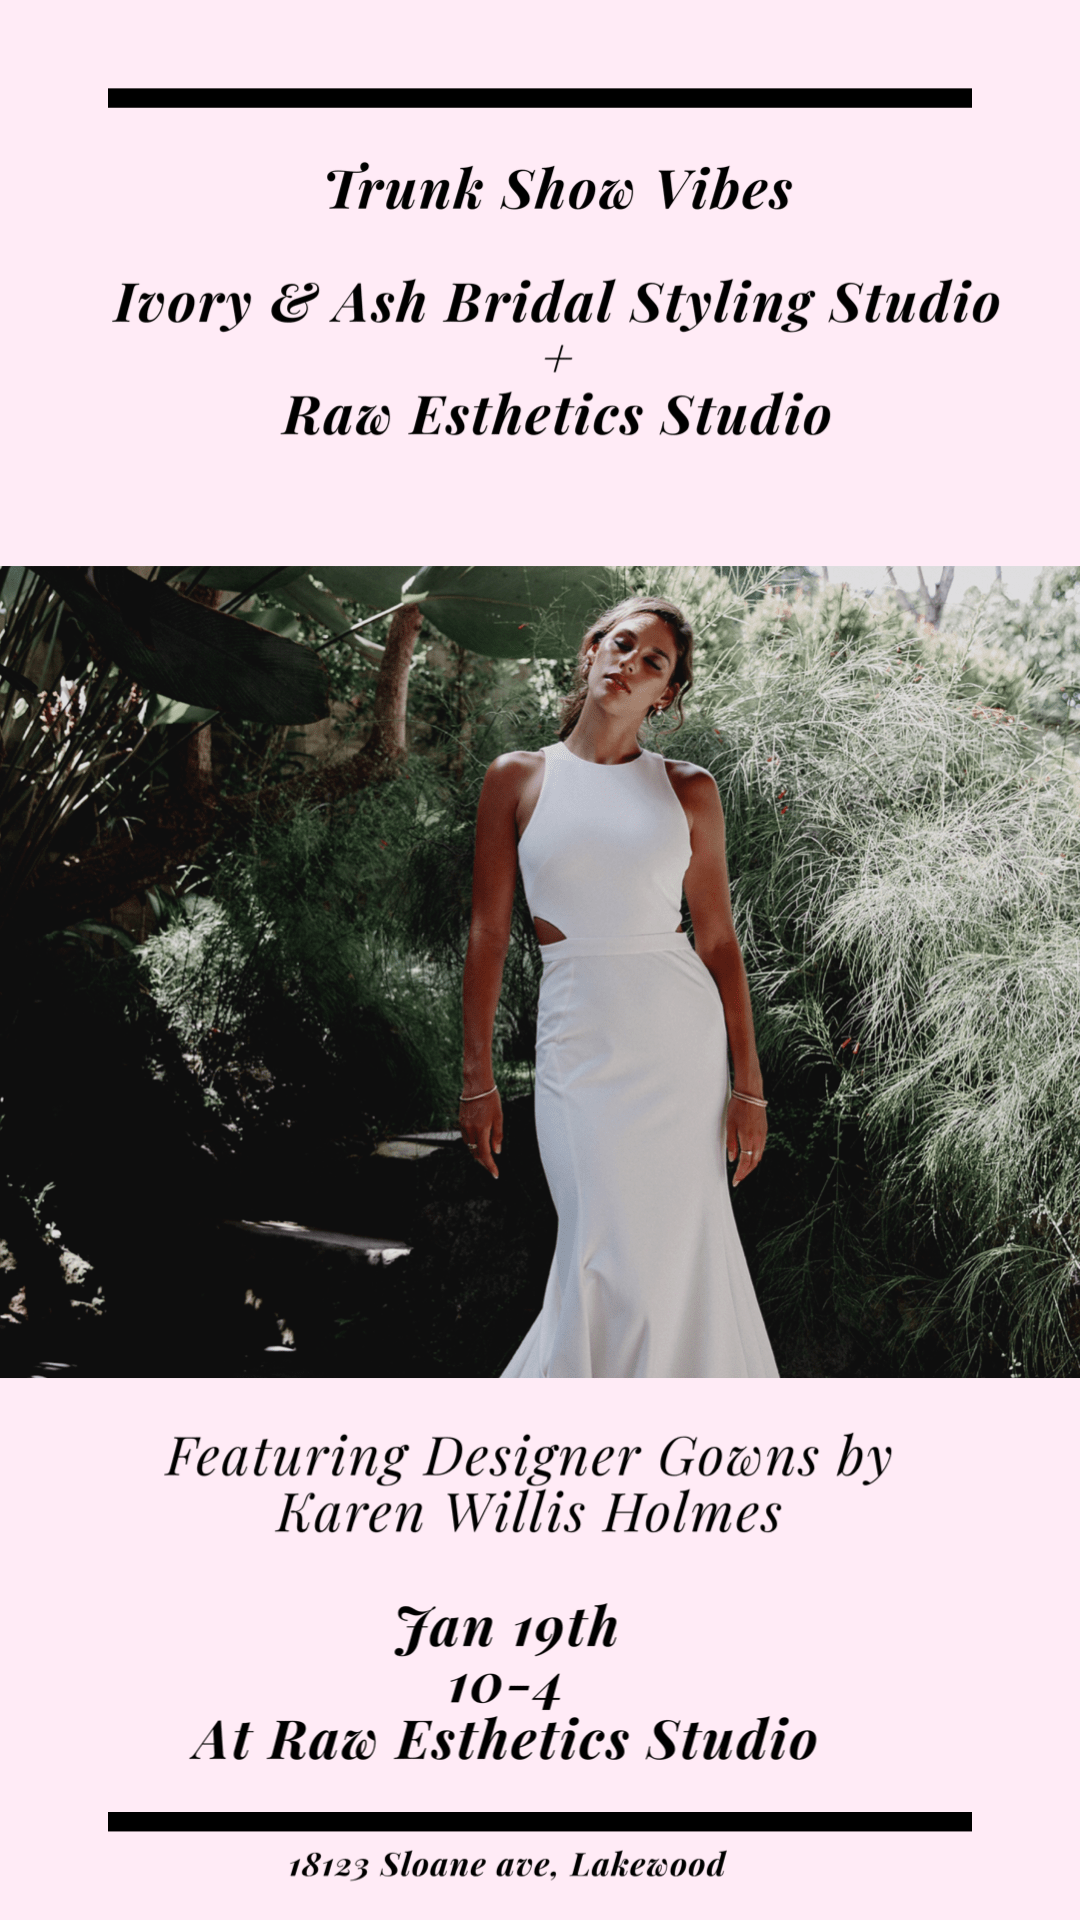 Trunk Show Featuring Designer Gowns from Karen Willis Homes